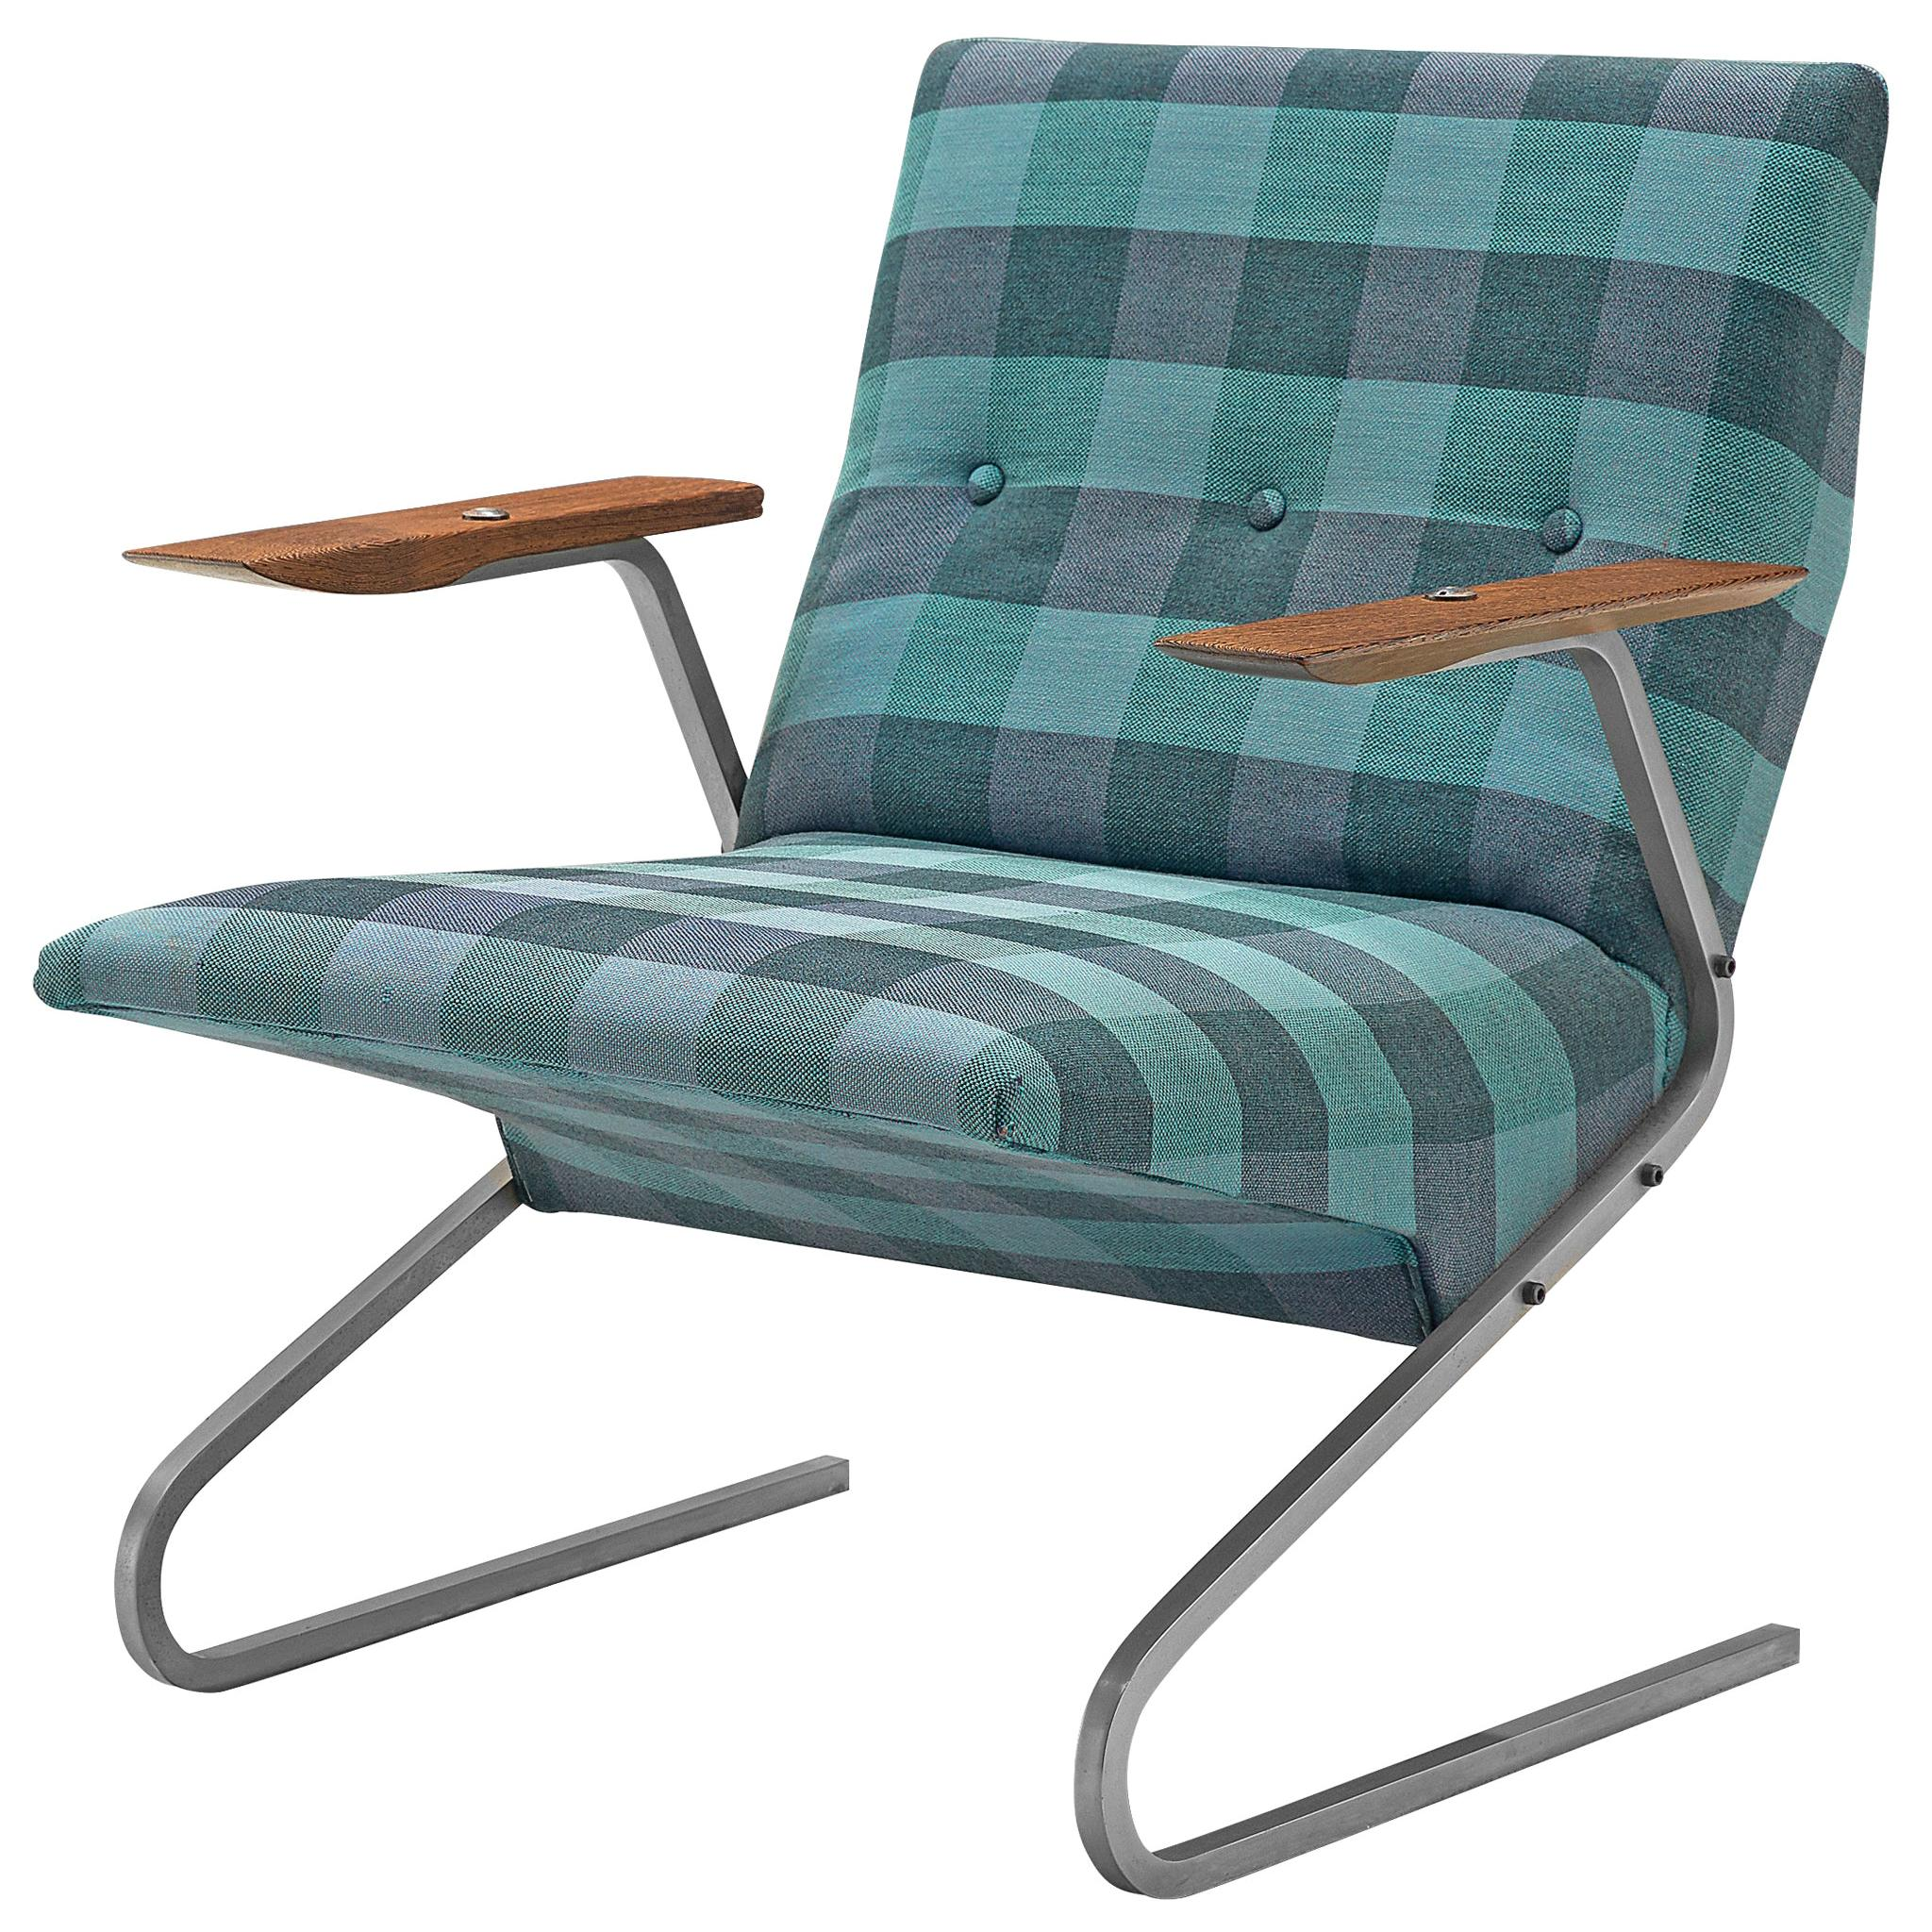 Georges van Rijck 'Cantilever' Armchair in Blue Checkered Upholstery